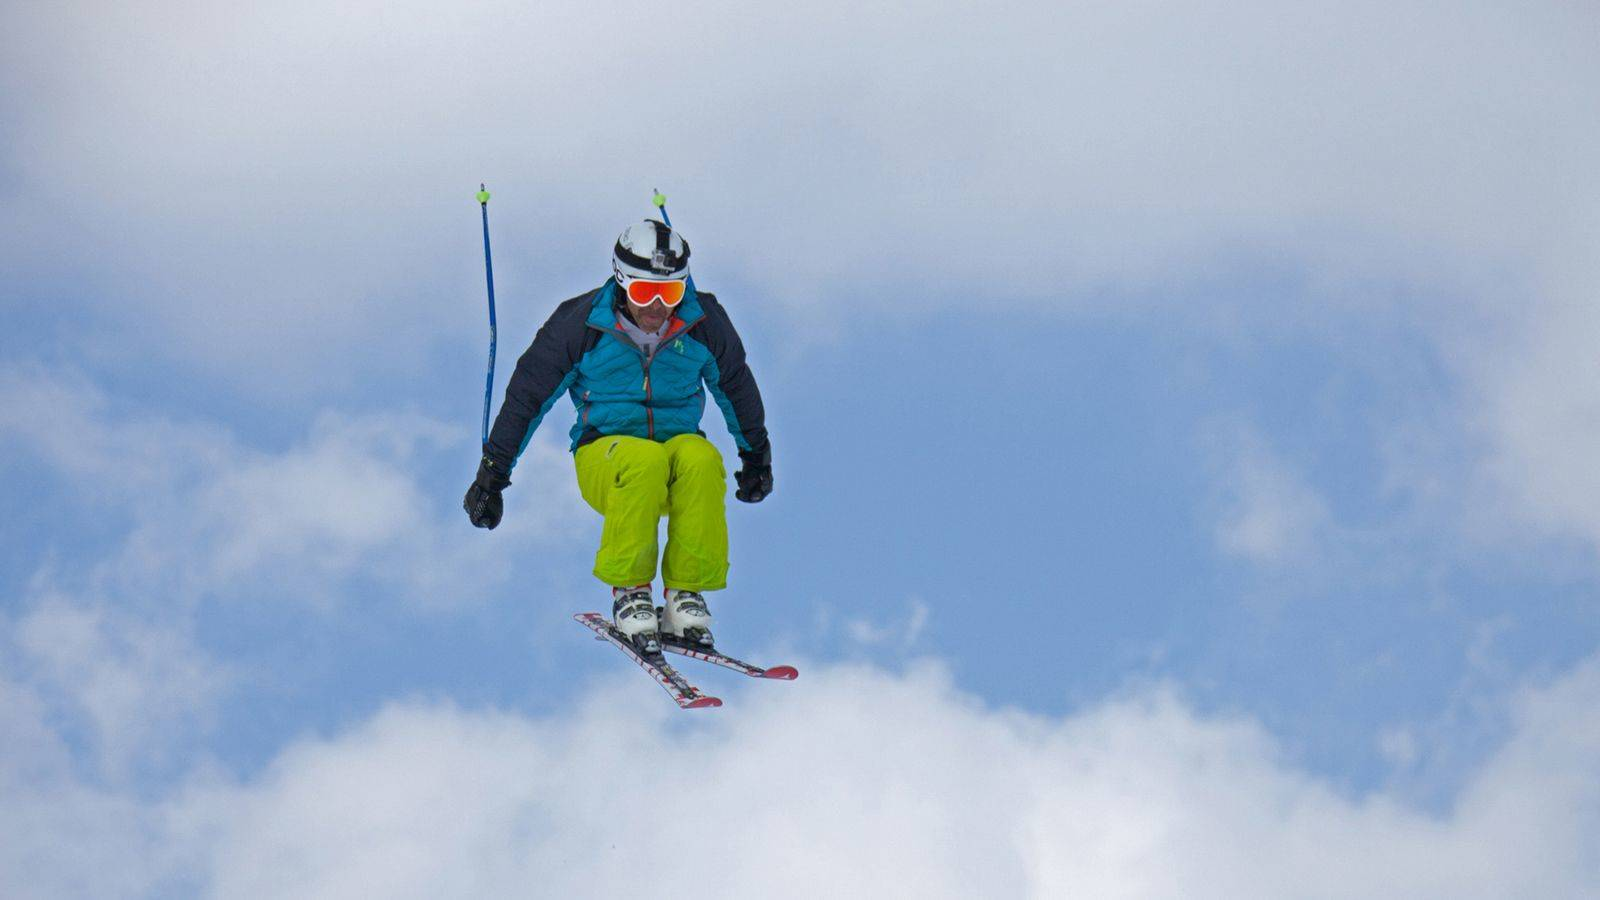 A skier during a jump on the ski slopes